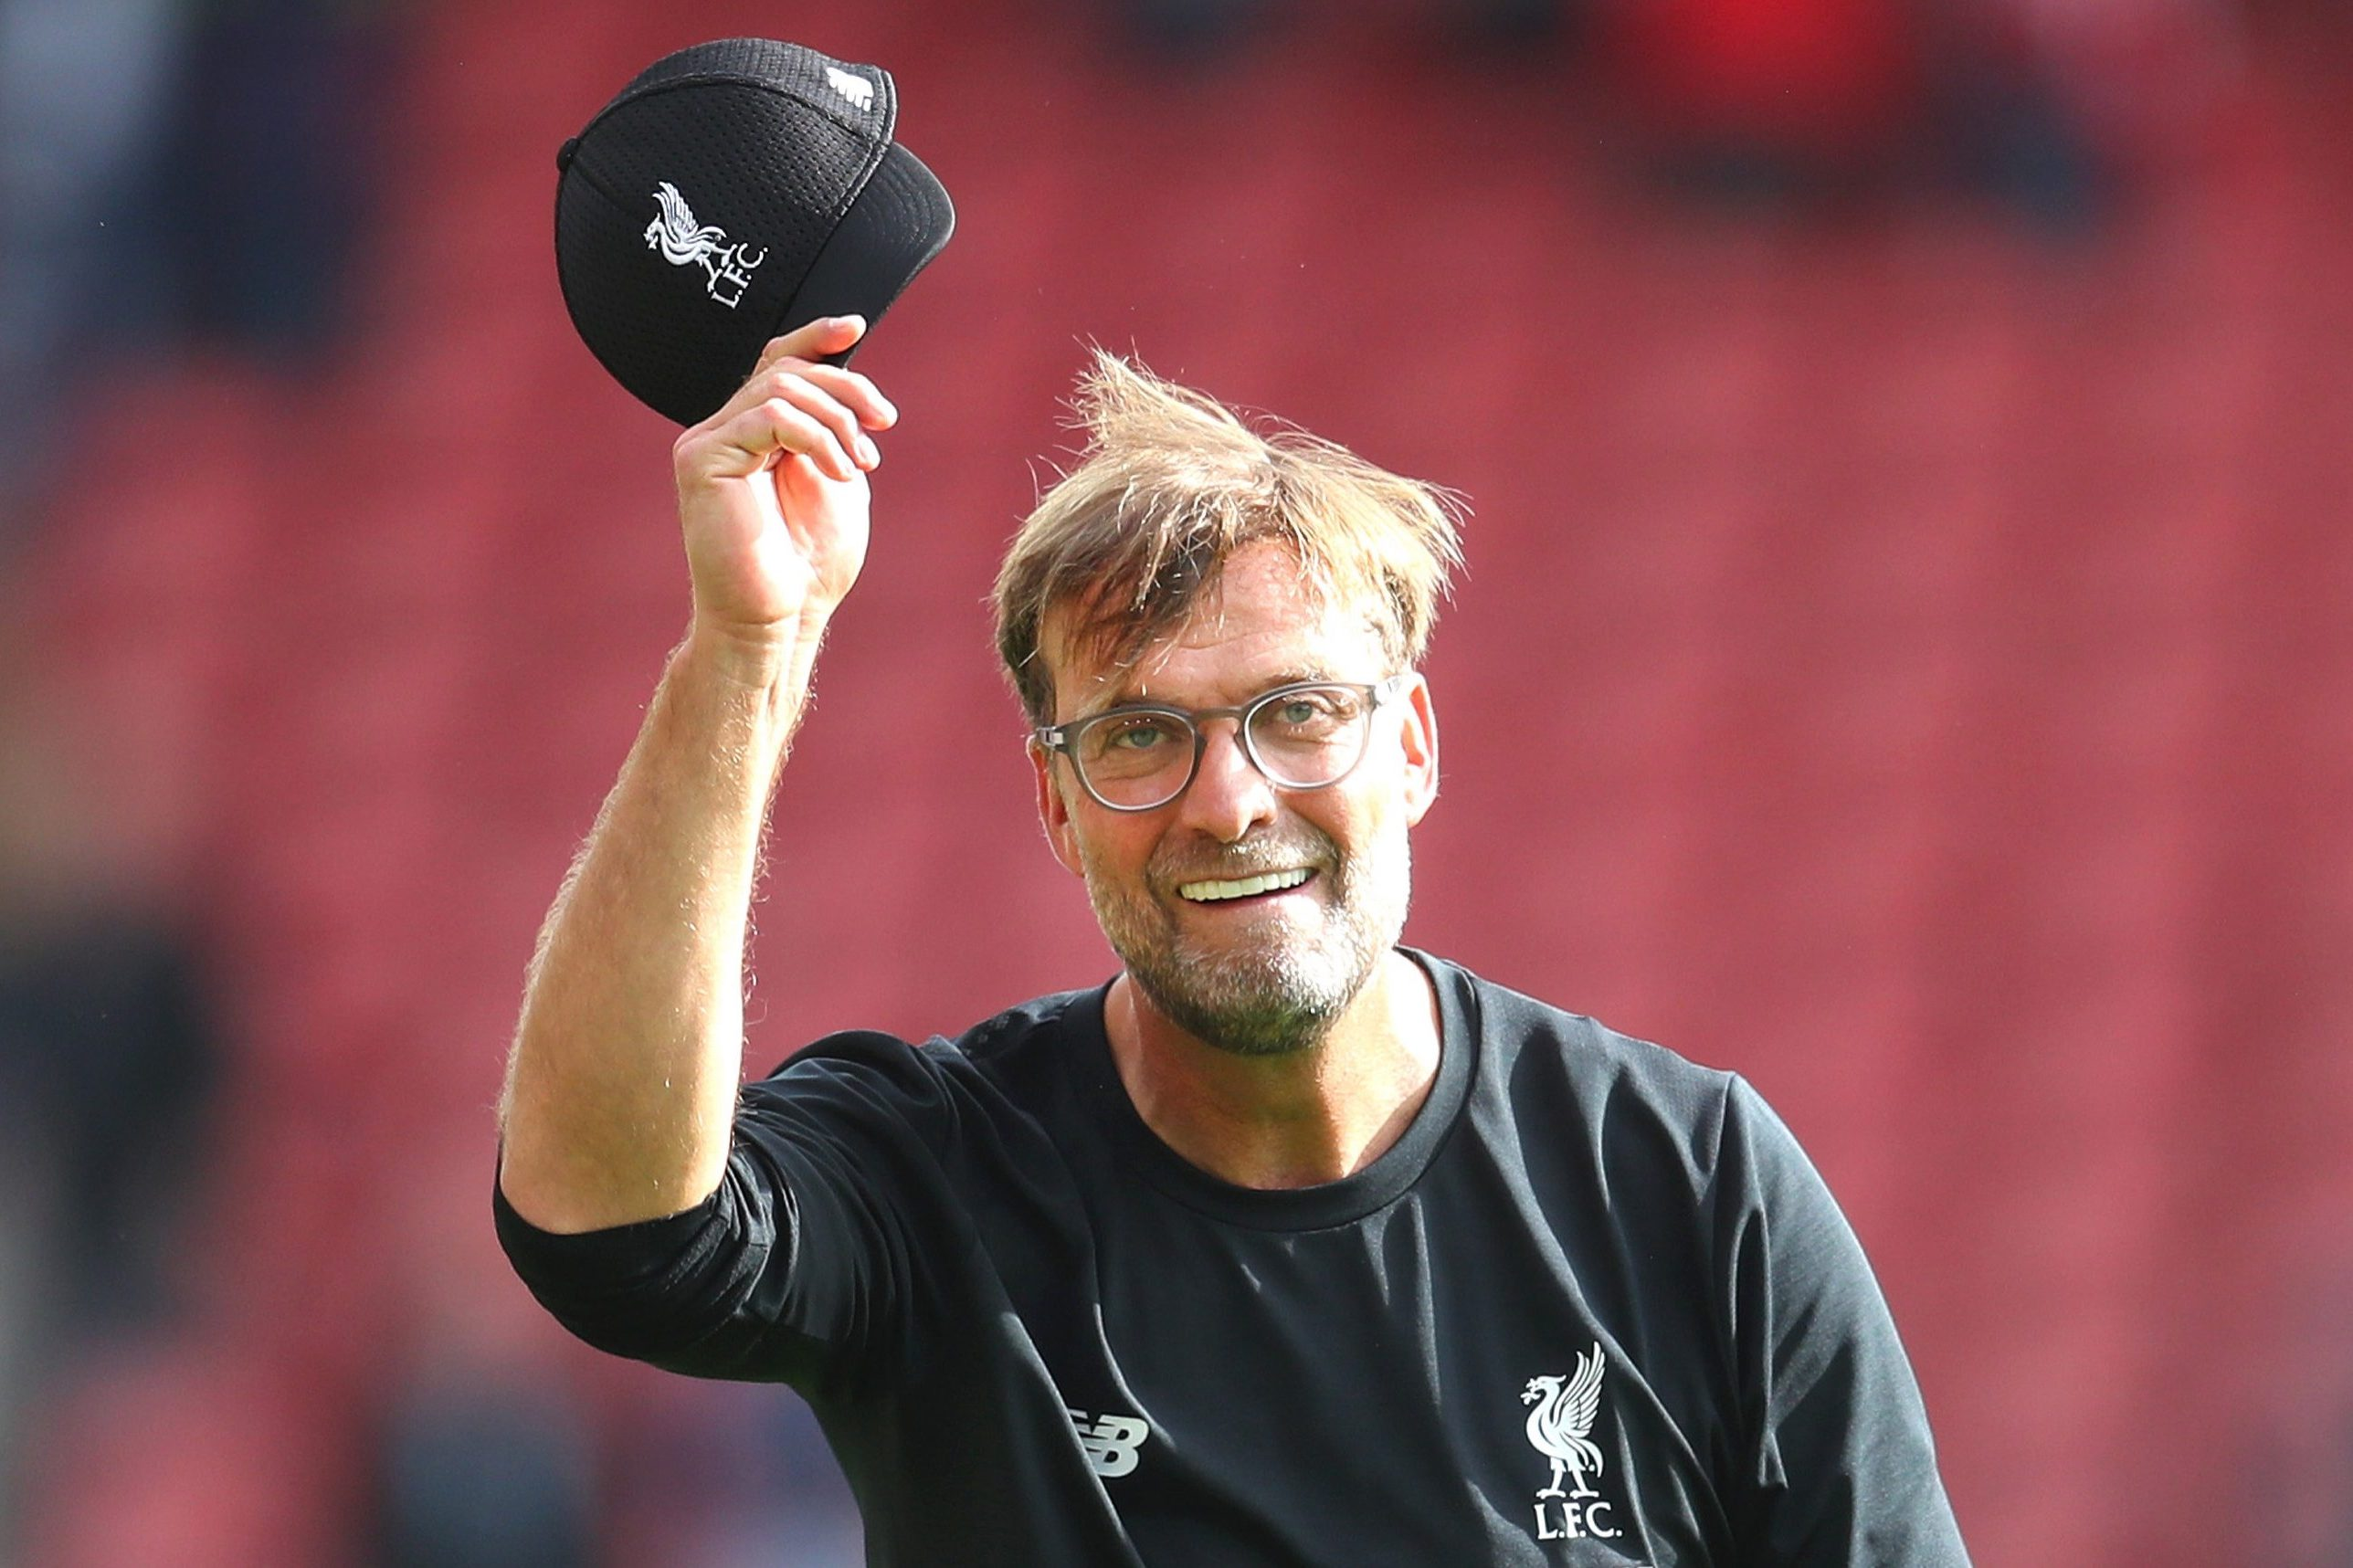 Jurgen Klopp stuns Liverpool fans as he reveals he may retire from management in 2-3 years